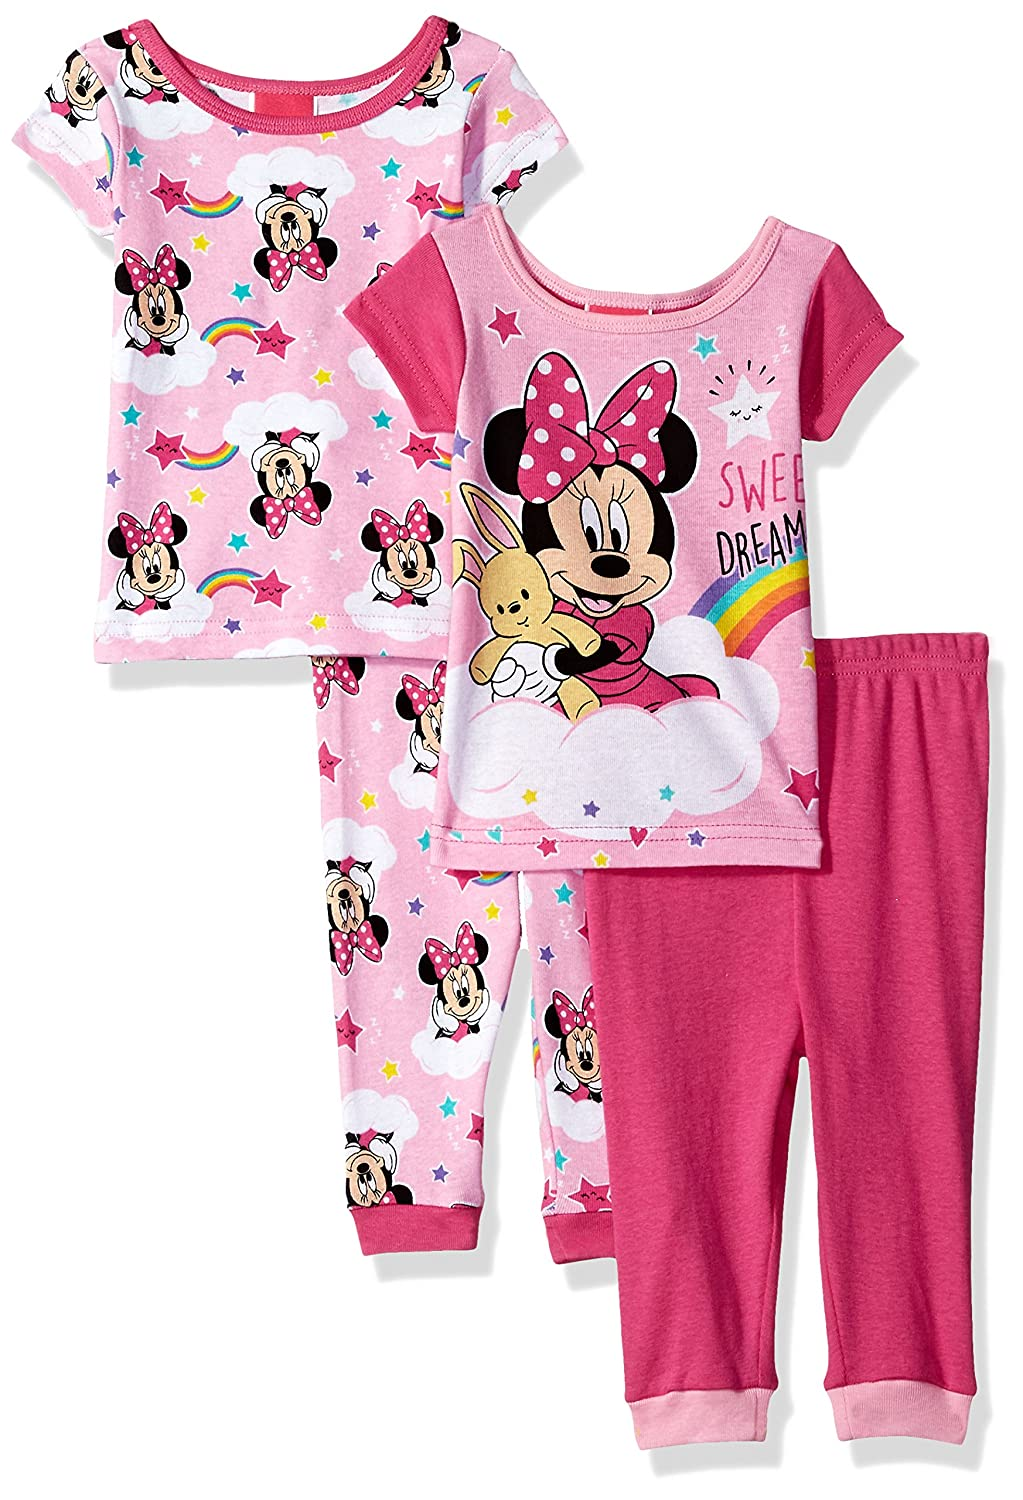 Disney Girls Minnie Mouse 4-Piece Cotton Pajama Set